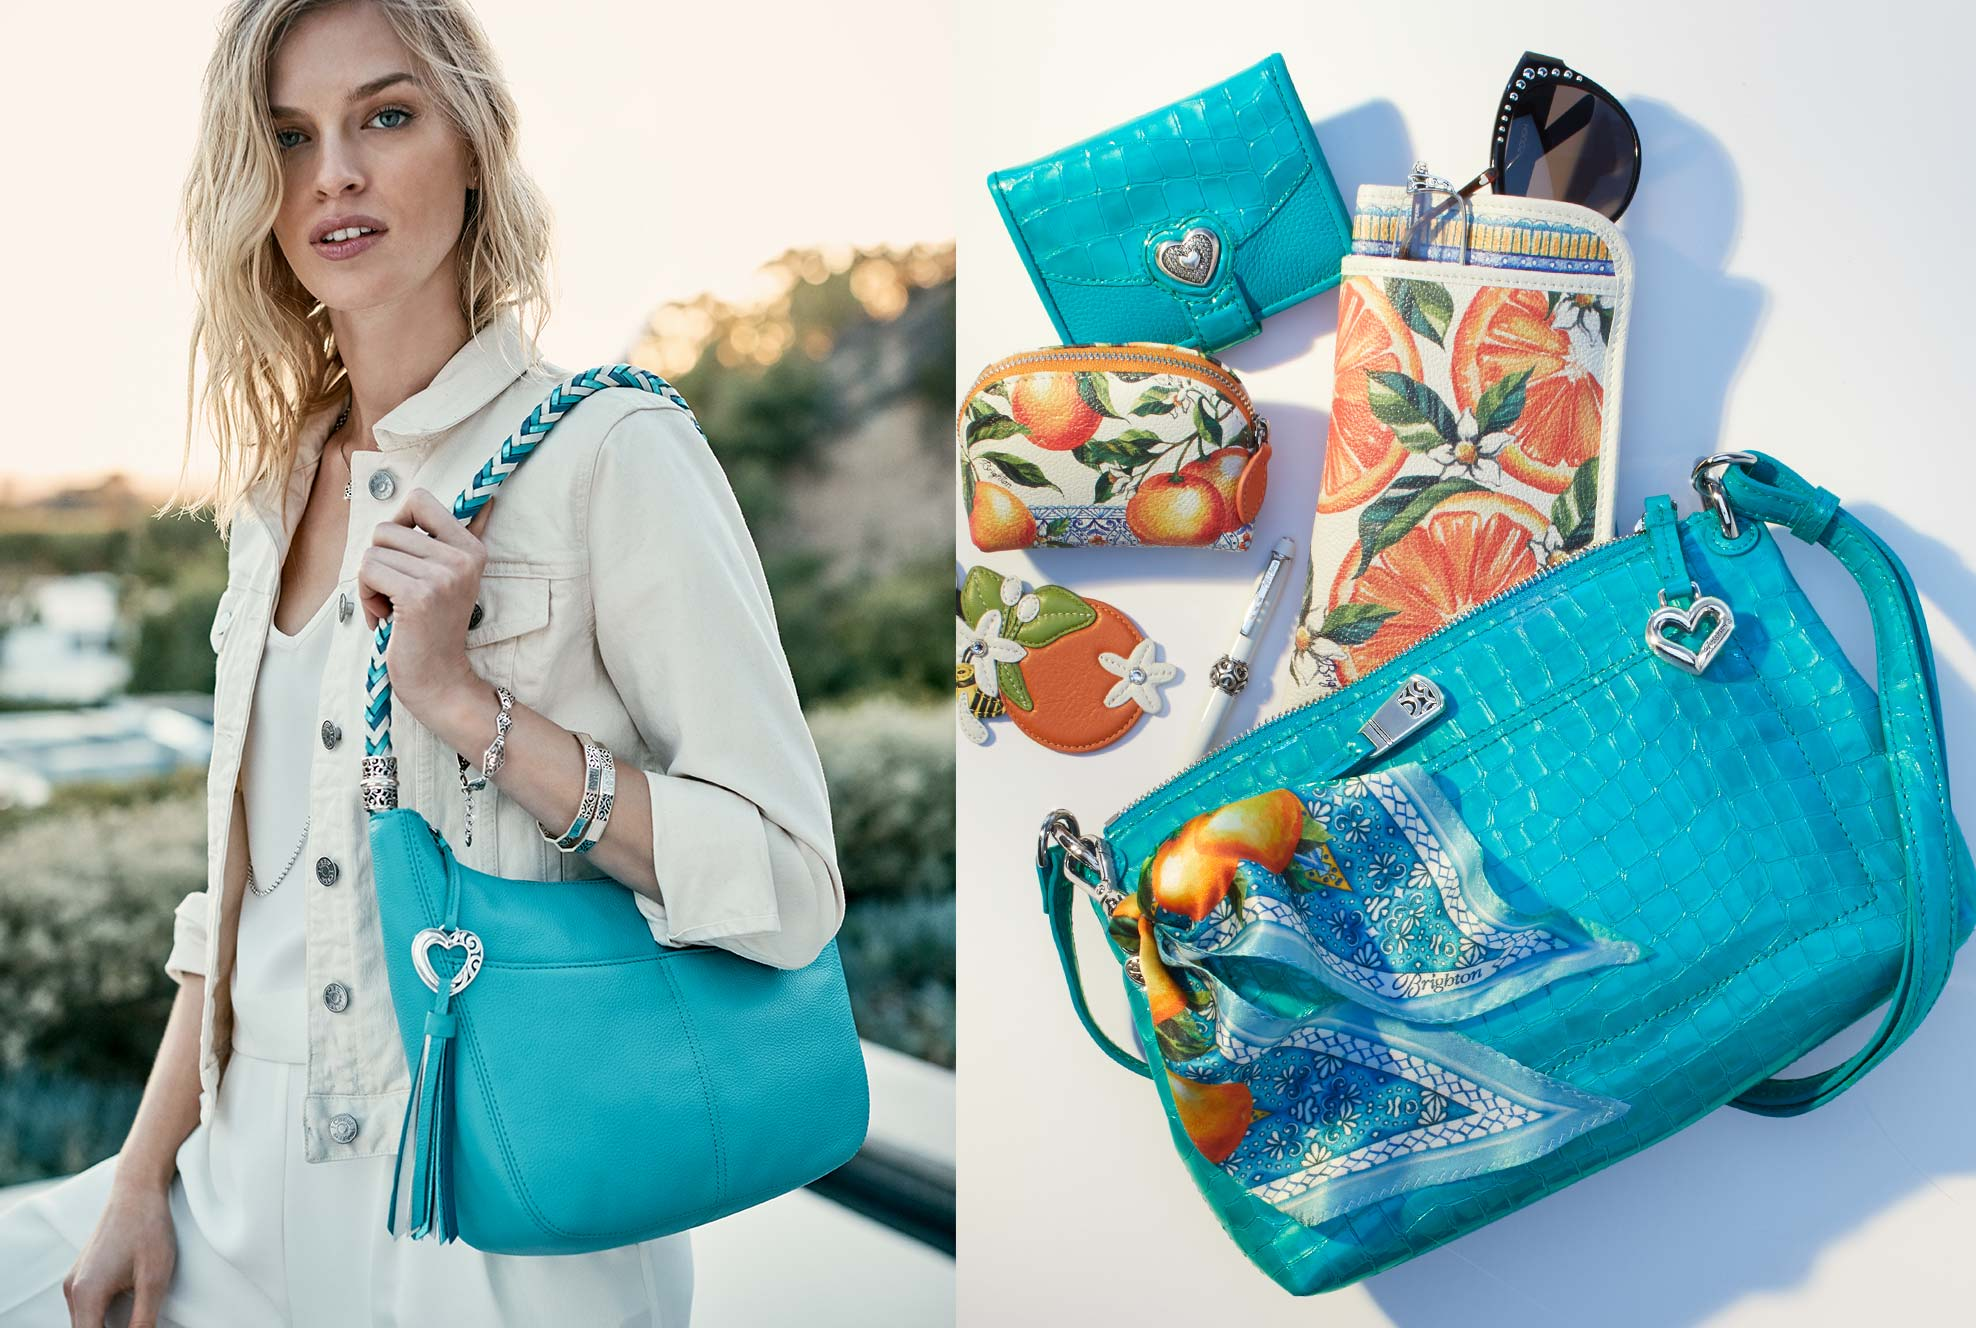 model with barbados in cerulean blue and bag spill